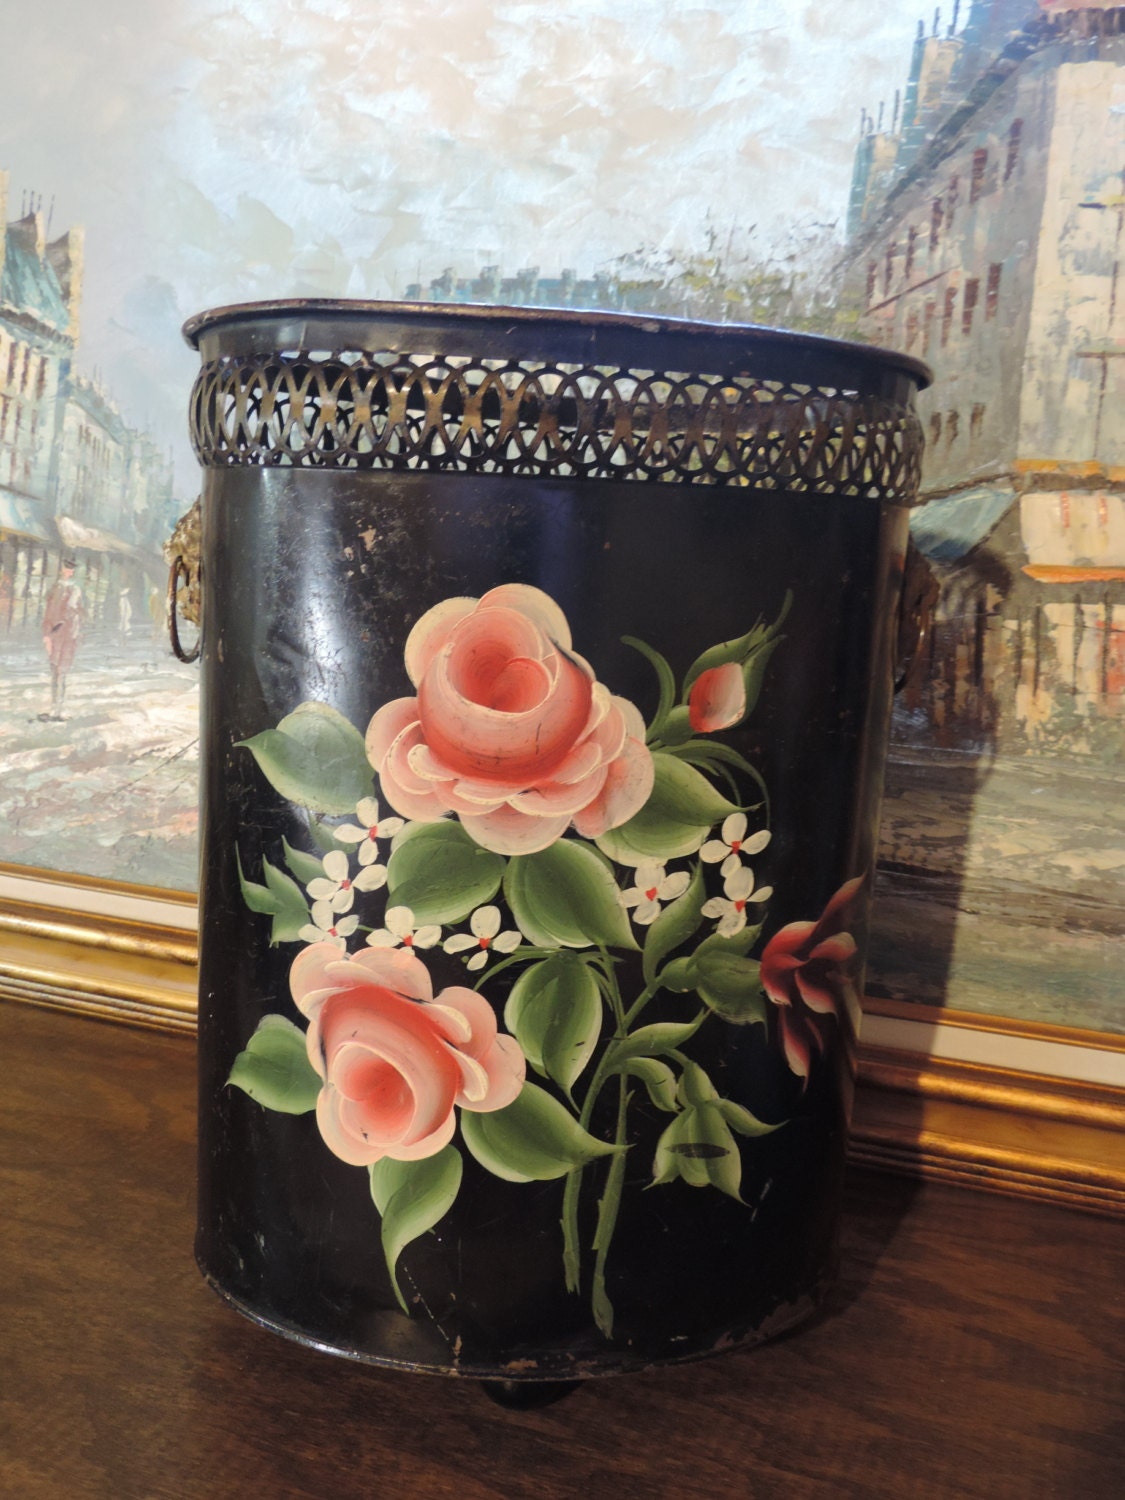 Vintage Trash Can French Country Home Decor Hand Painted Rose